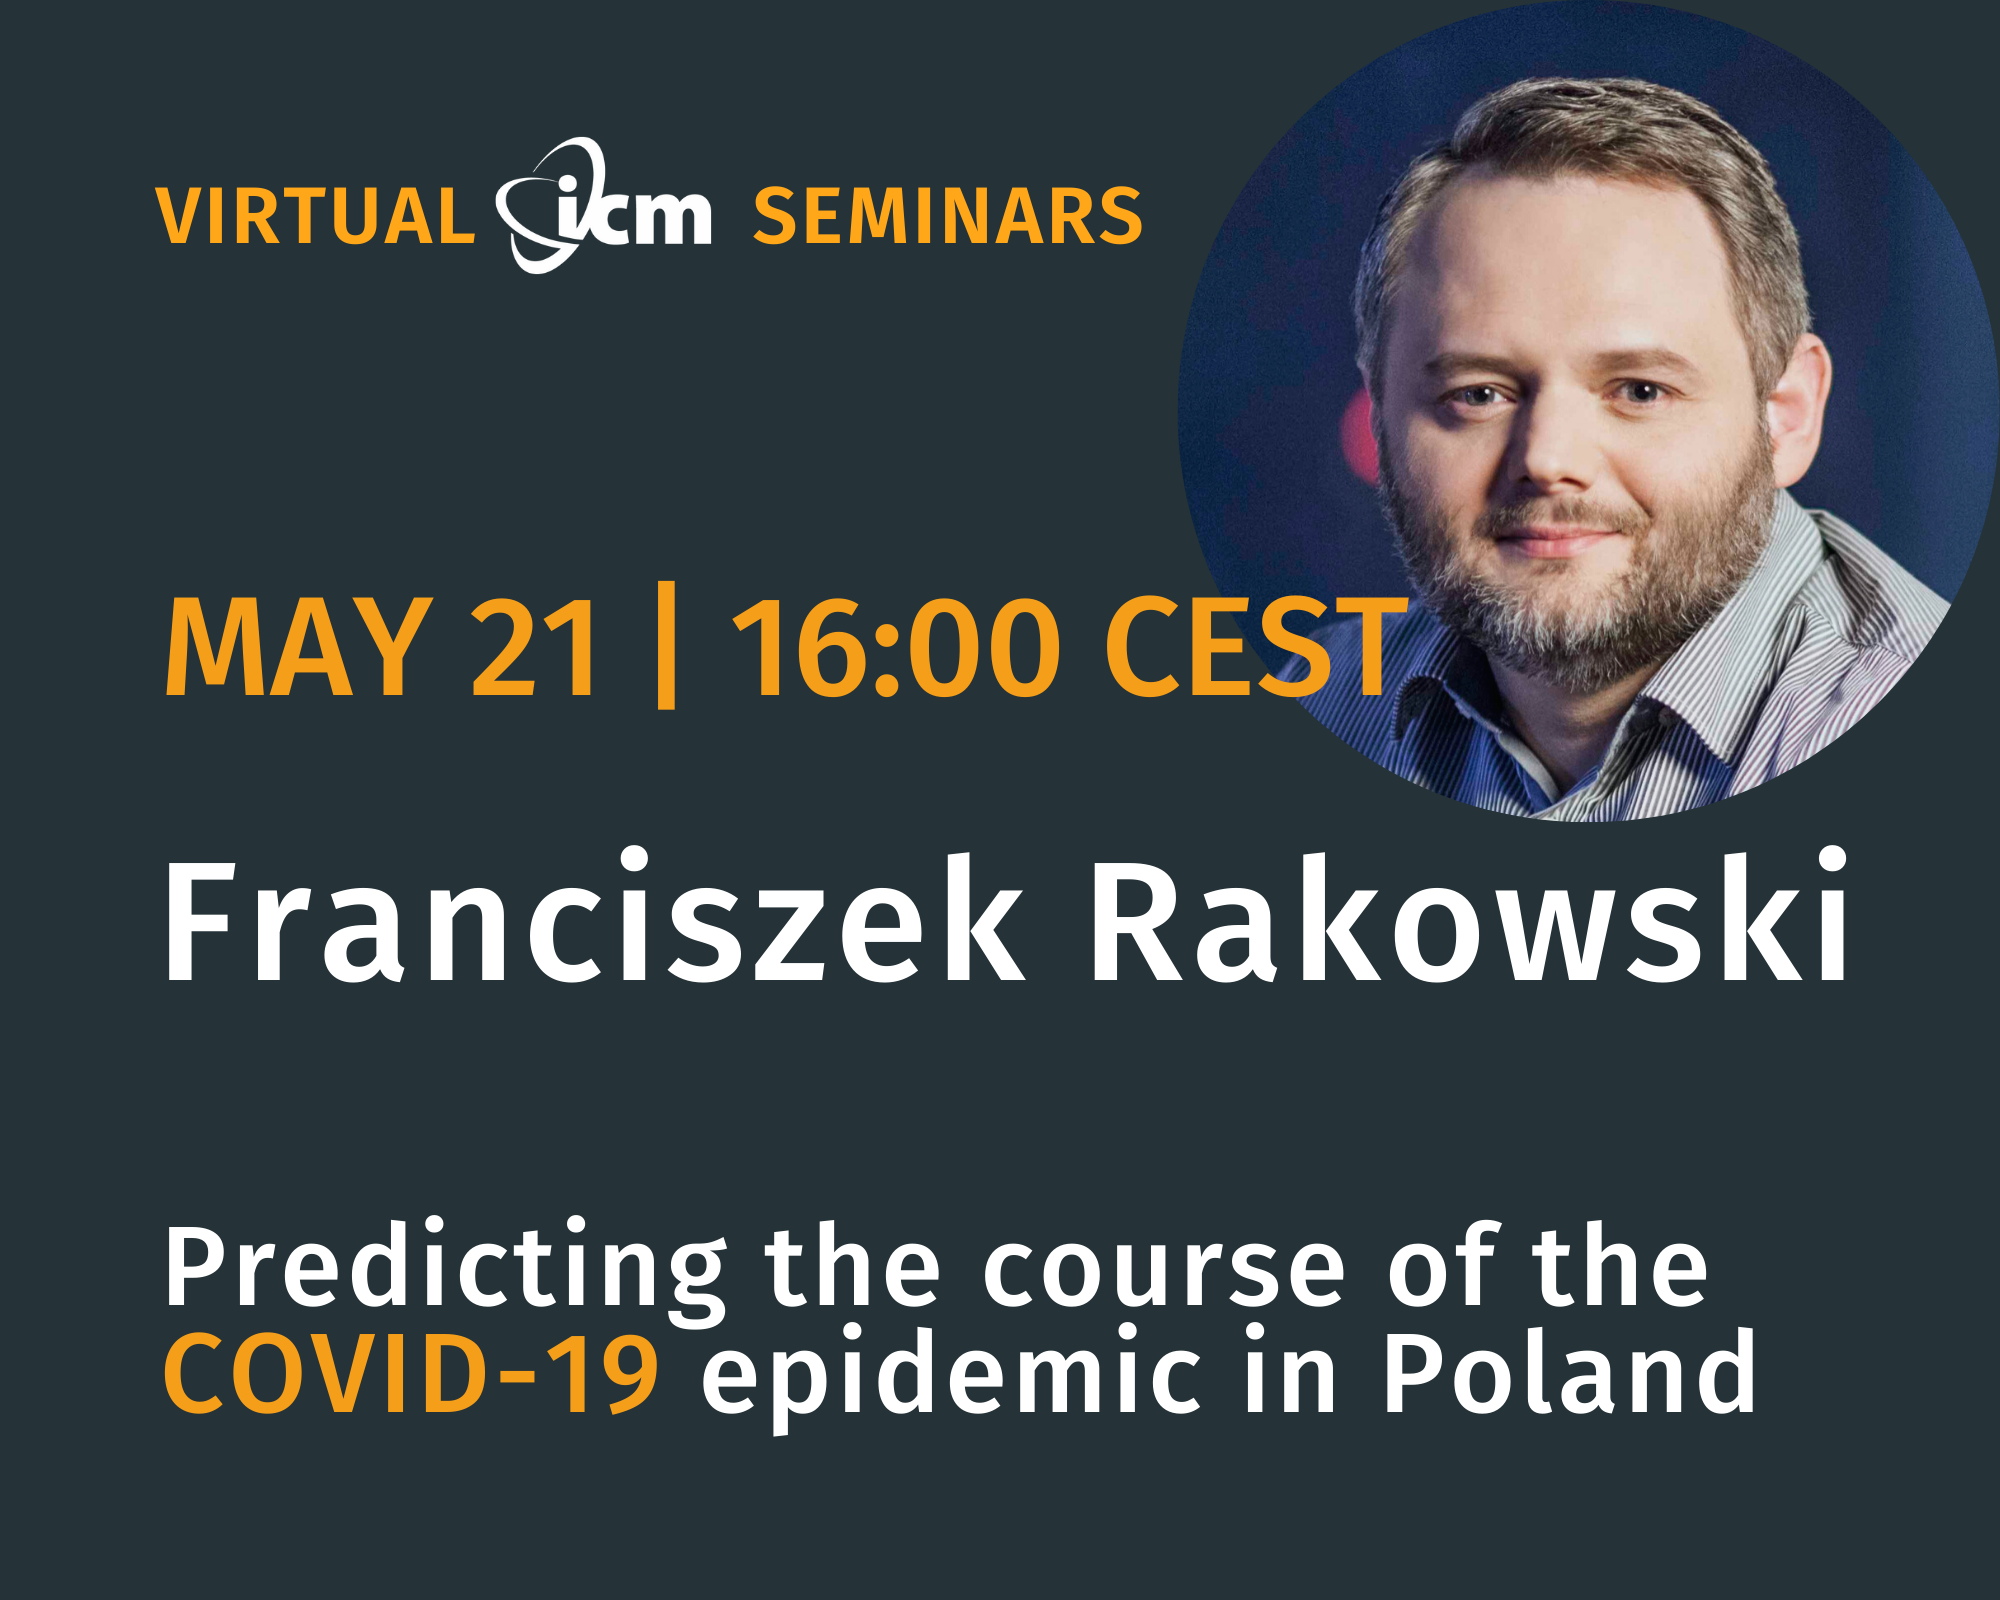 SCFE20 Virtual ICM Seminar Predicting the course of the COVID-19 epidemic in Poland May 21 2020